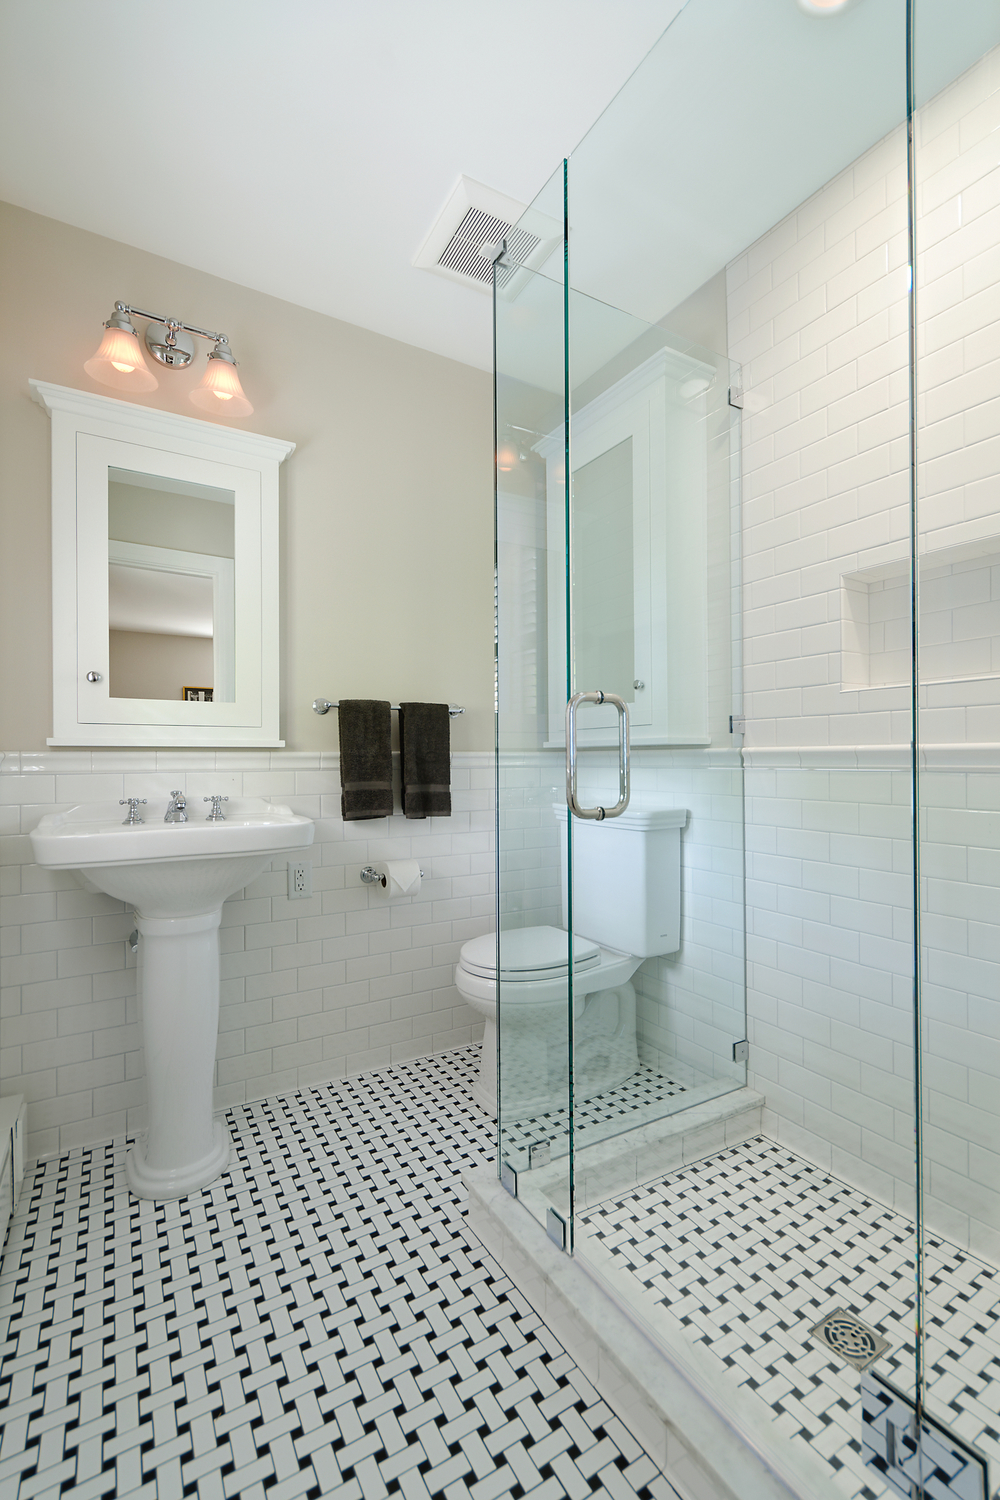 Coty award winning bathroom haines construction llc for Bathroom design 1930 s home